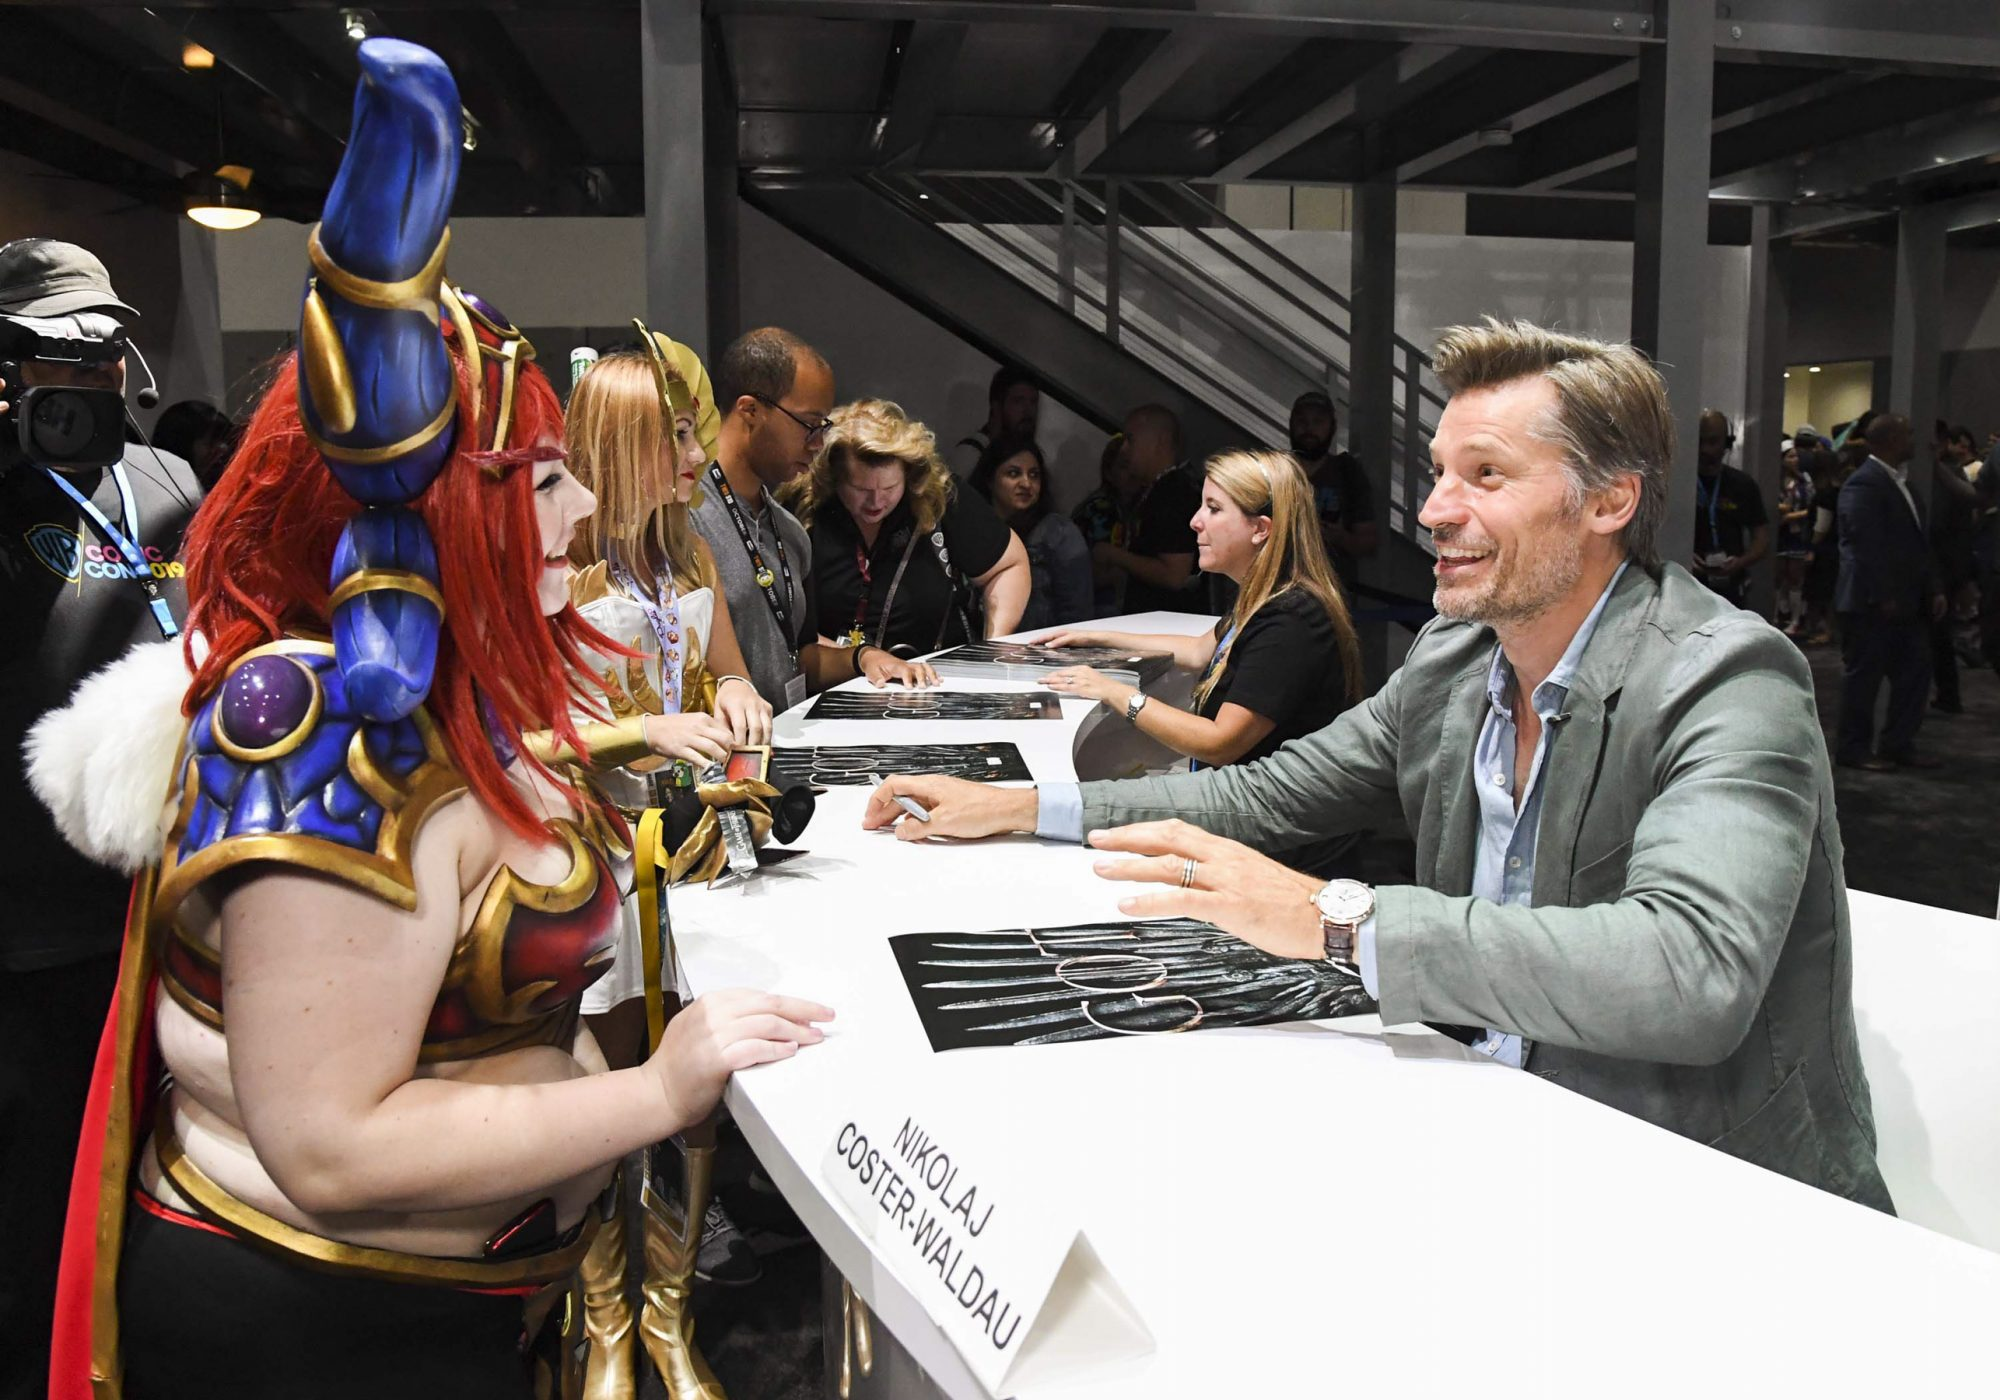 """SAN DIEGO, CALIFORNIA - JULY 19: Nikolaj Coster-Waldau at """"Game Of Thrones"""" Comic Con Autograph Signing 2019 on July 19, 2019 in San Diego, California. (Photo by Jeff Kravitz/FilmMagic for HBO)"""